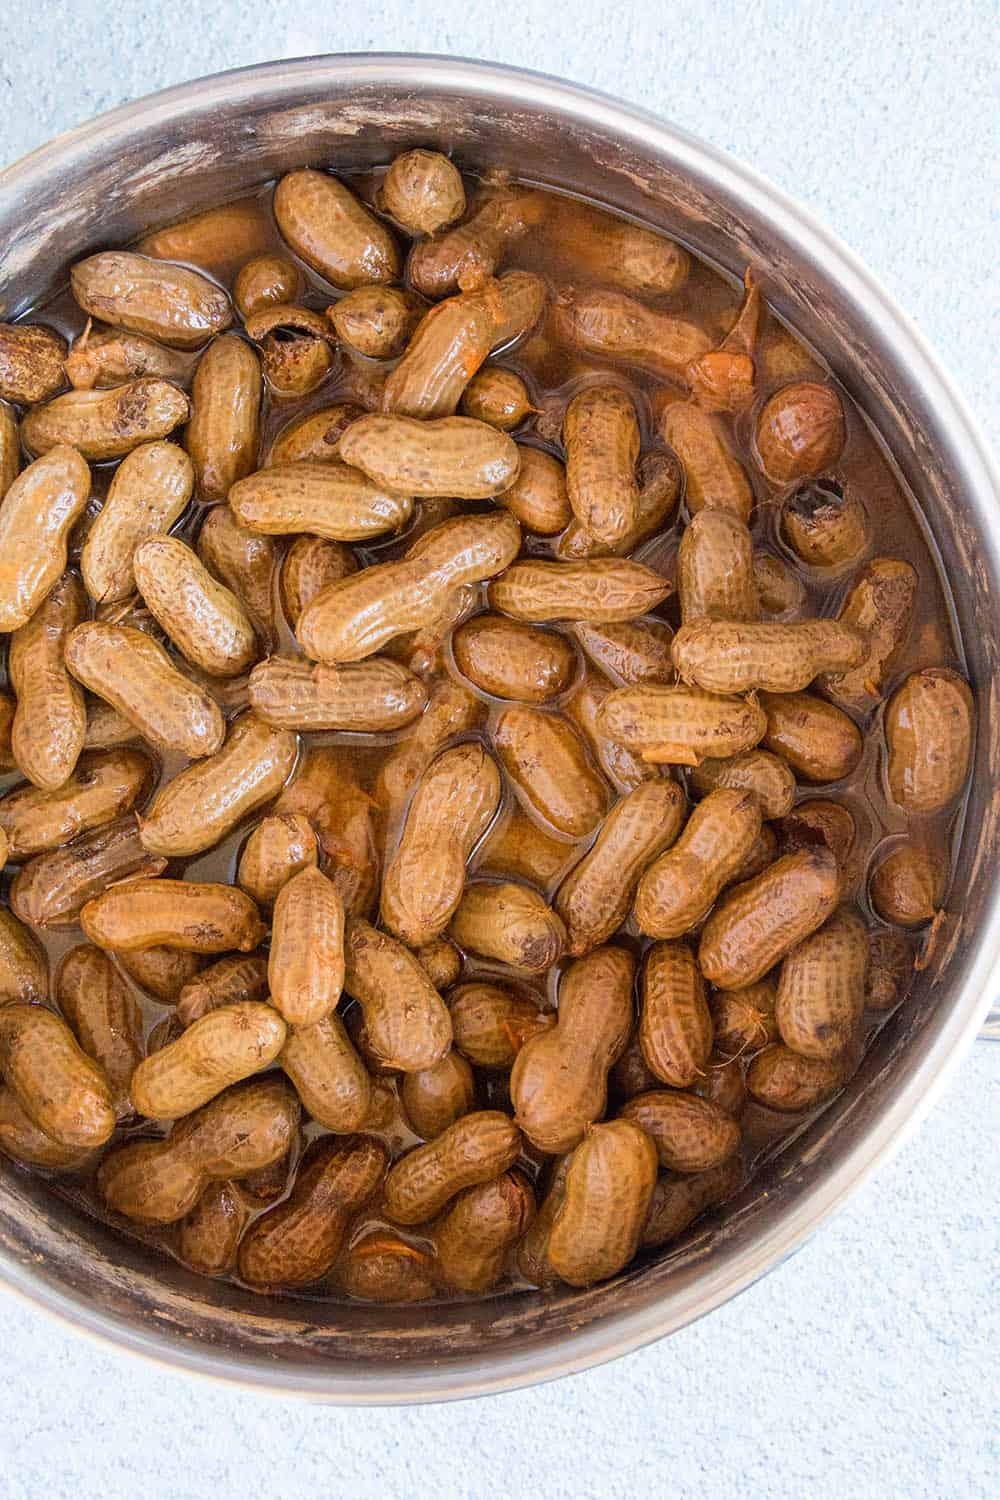 Cajun Boiled Peanuts in a pot